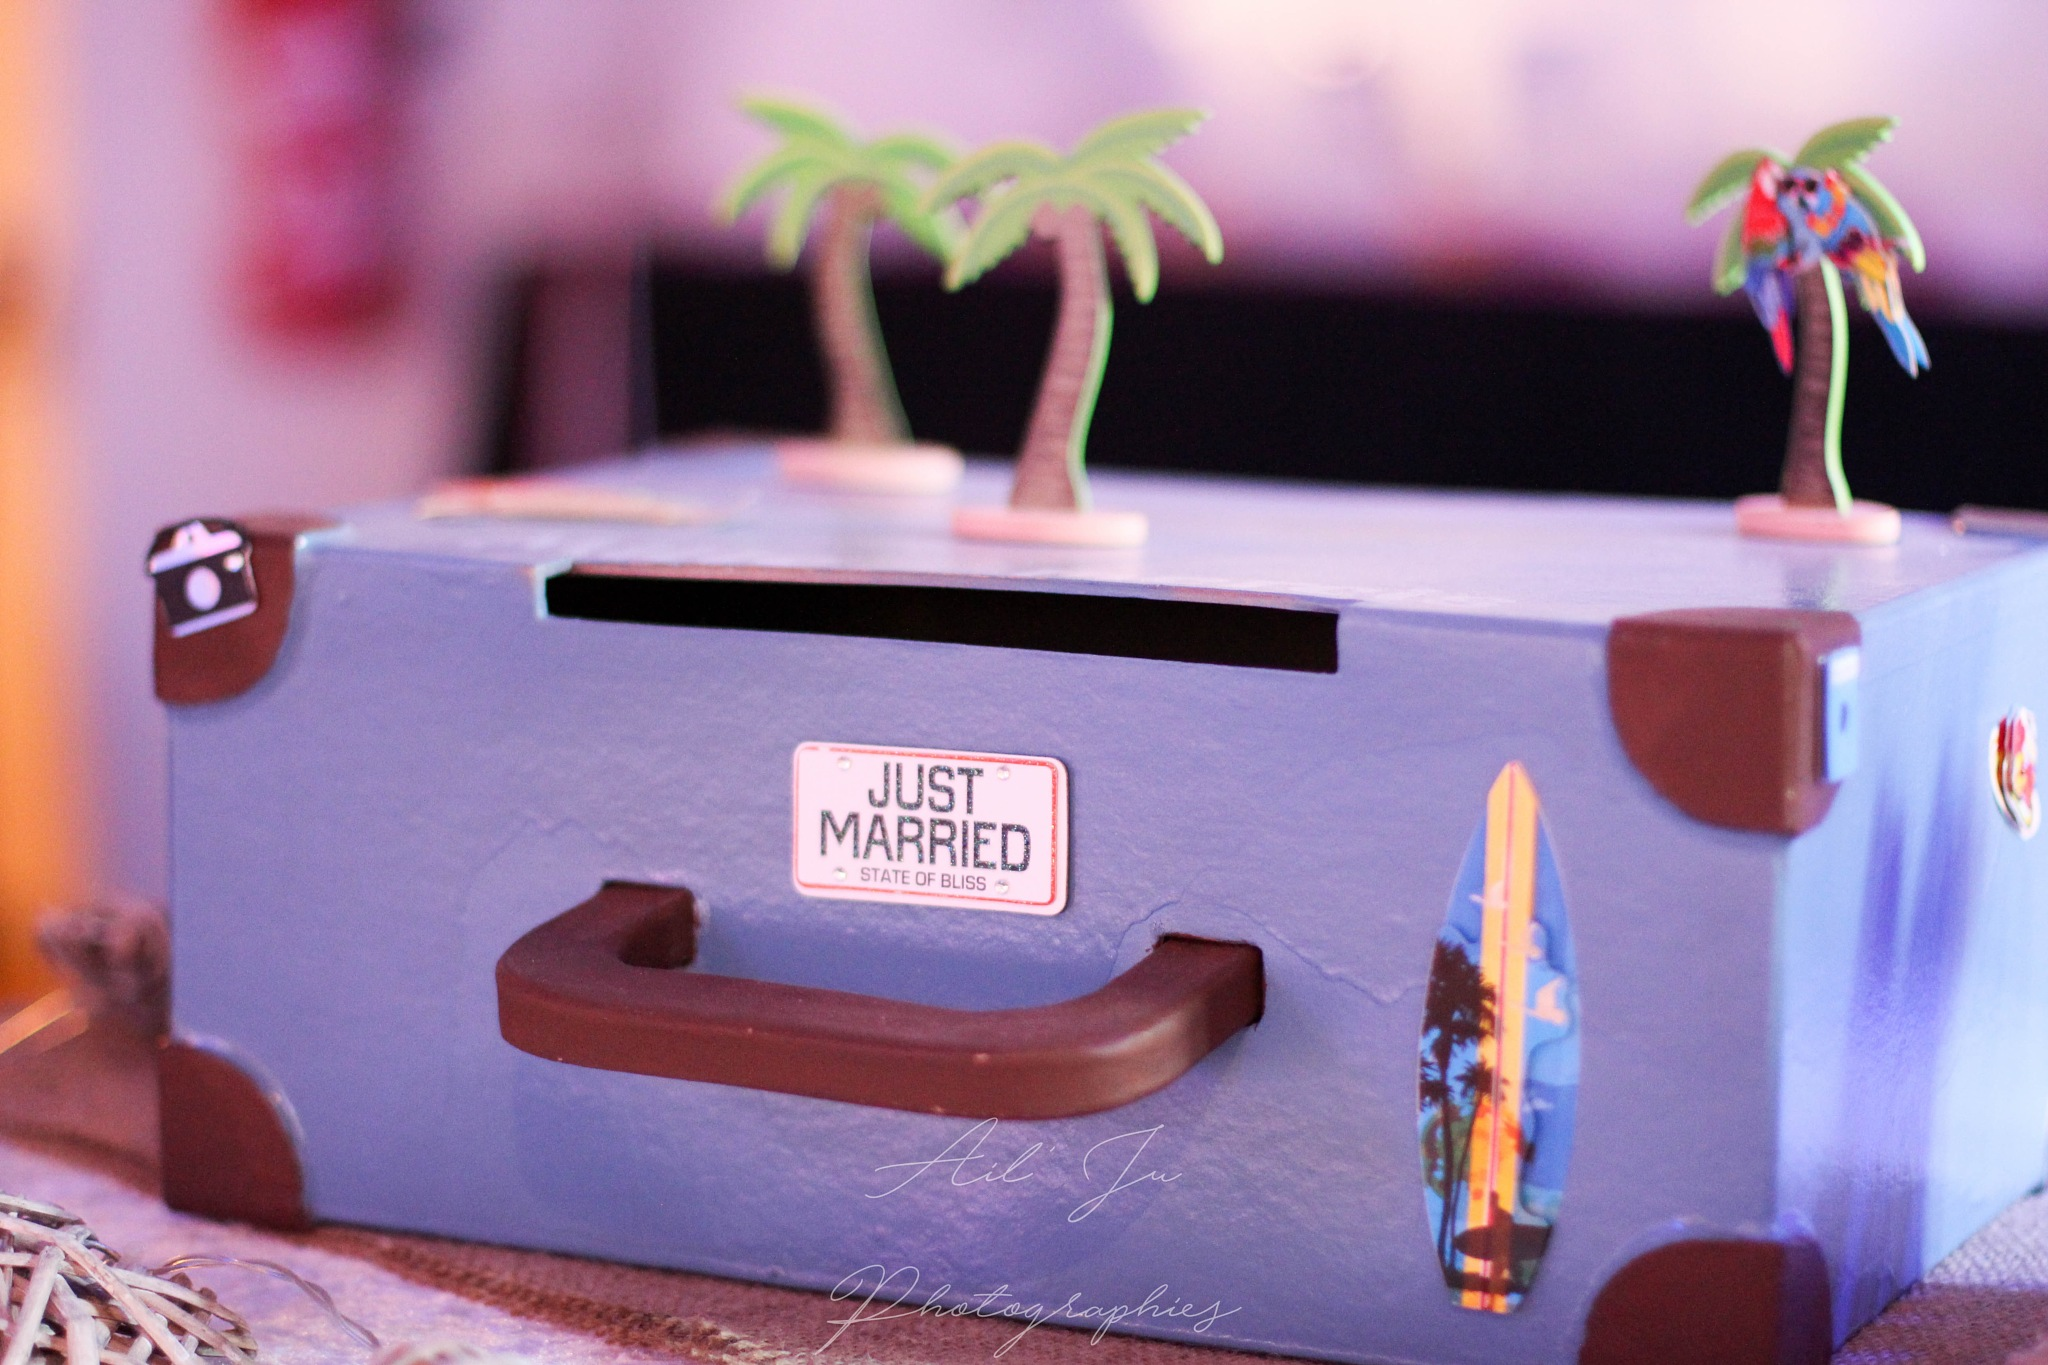 Just married by Julia Robresco